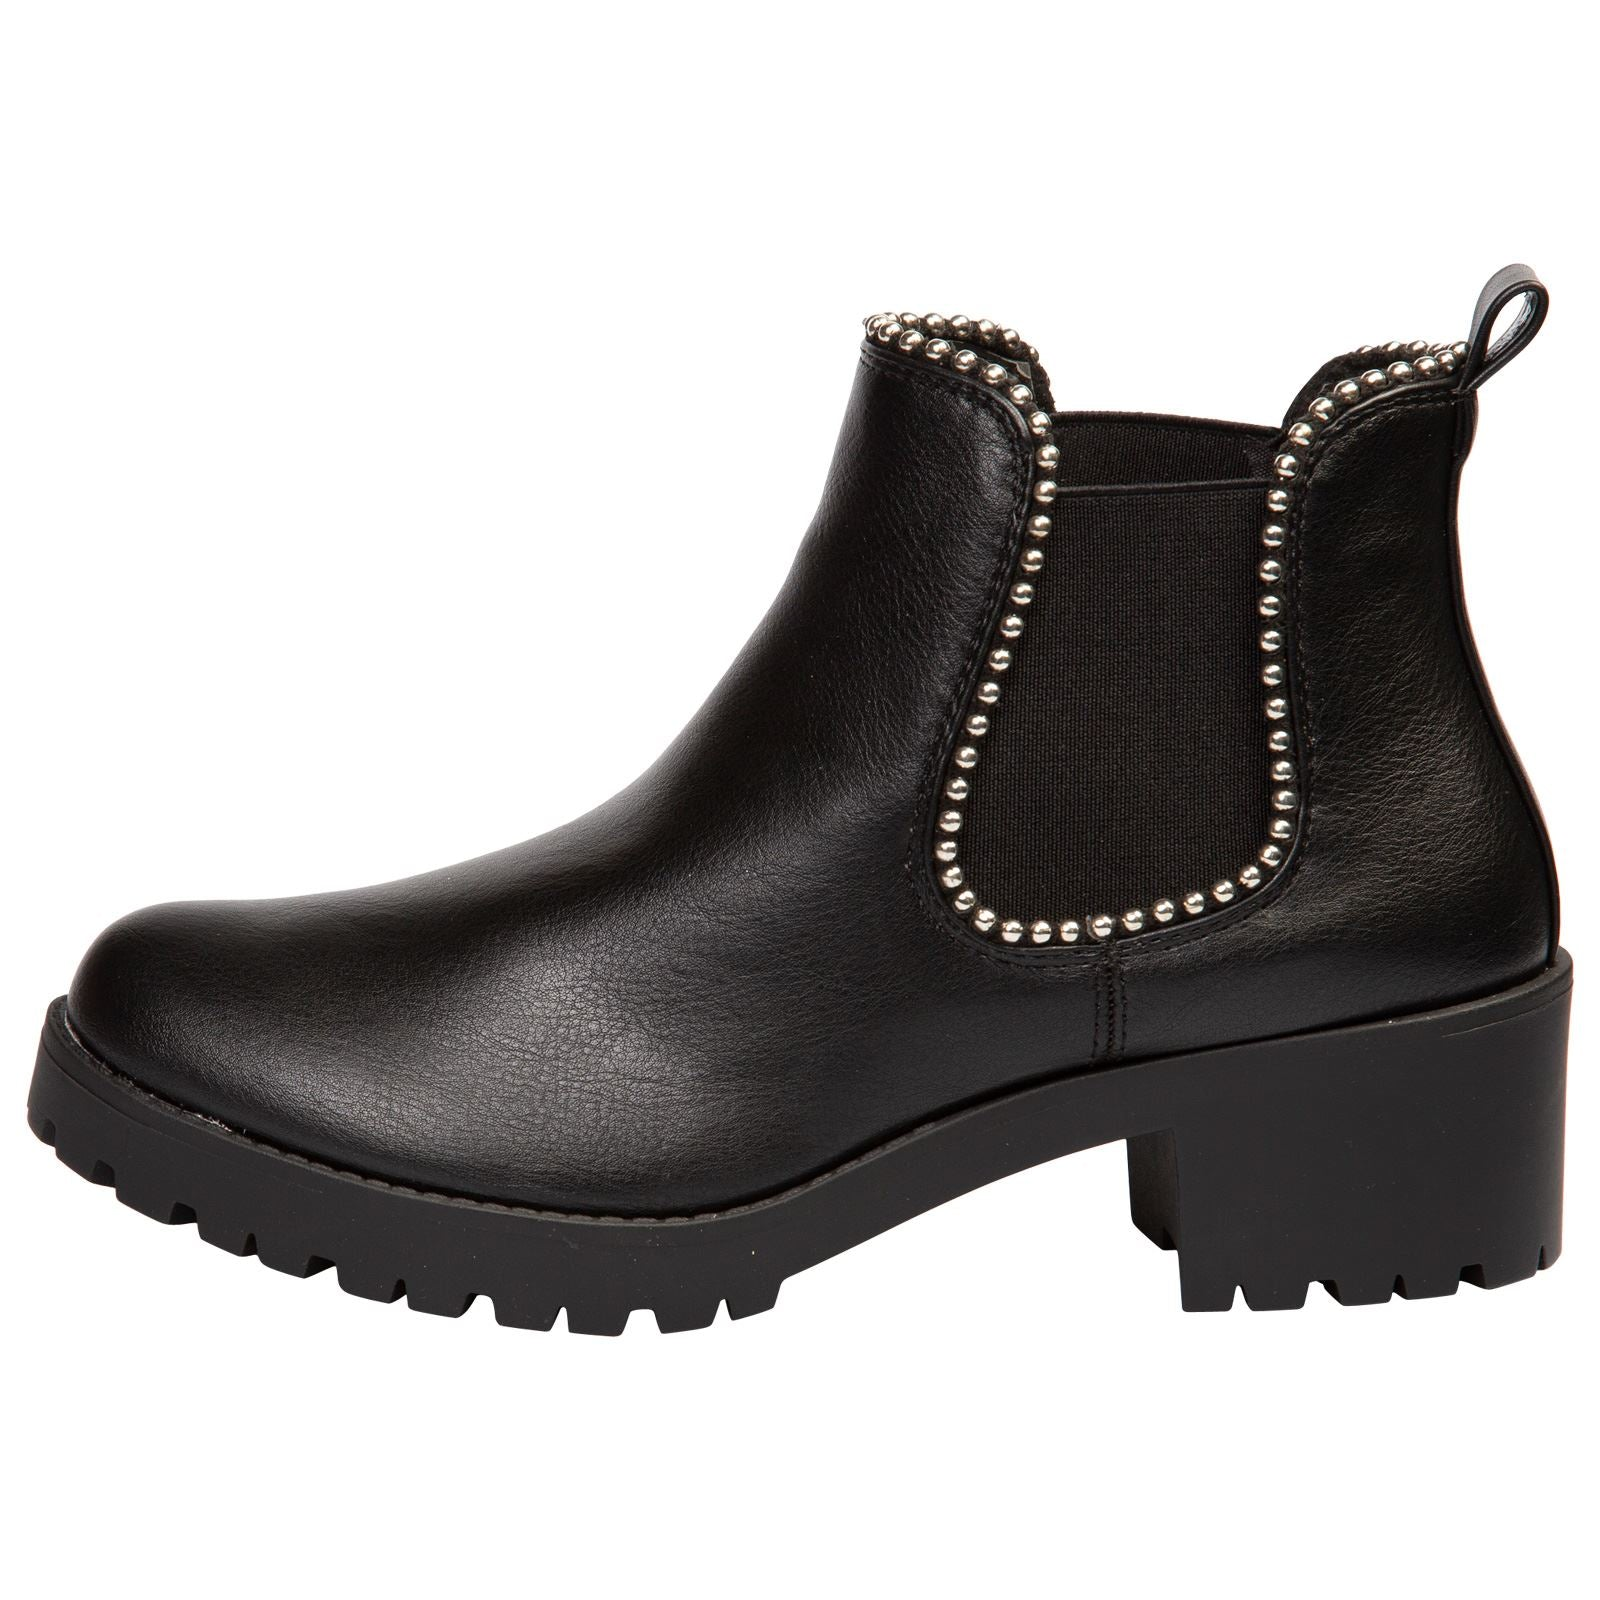 Judie Chelsea Ankle Boots in Black Faux Leather - Feet First Fashion